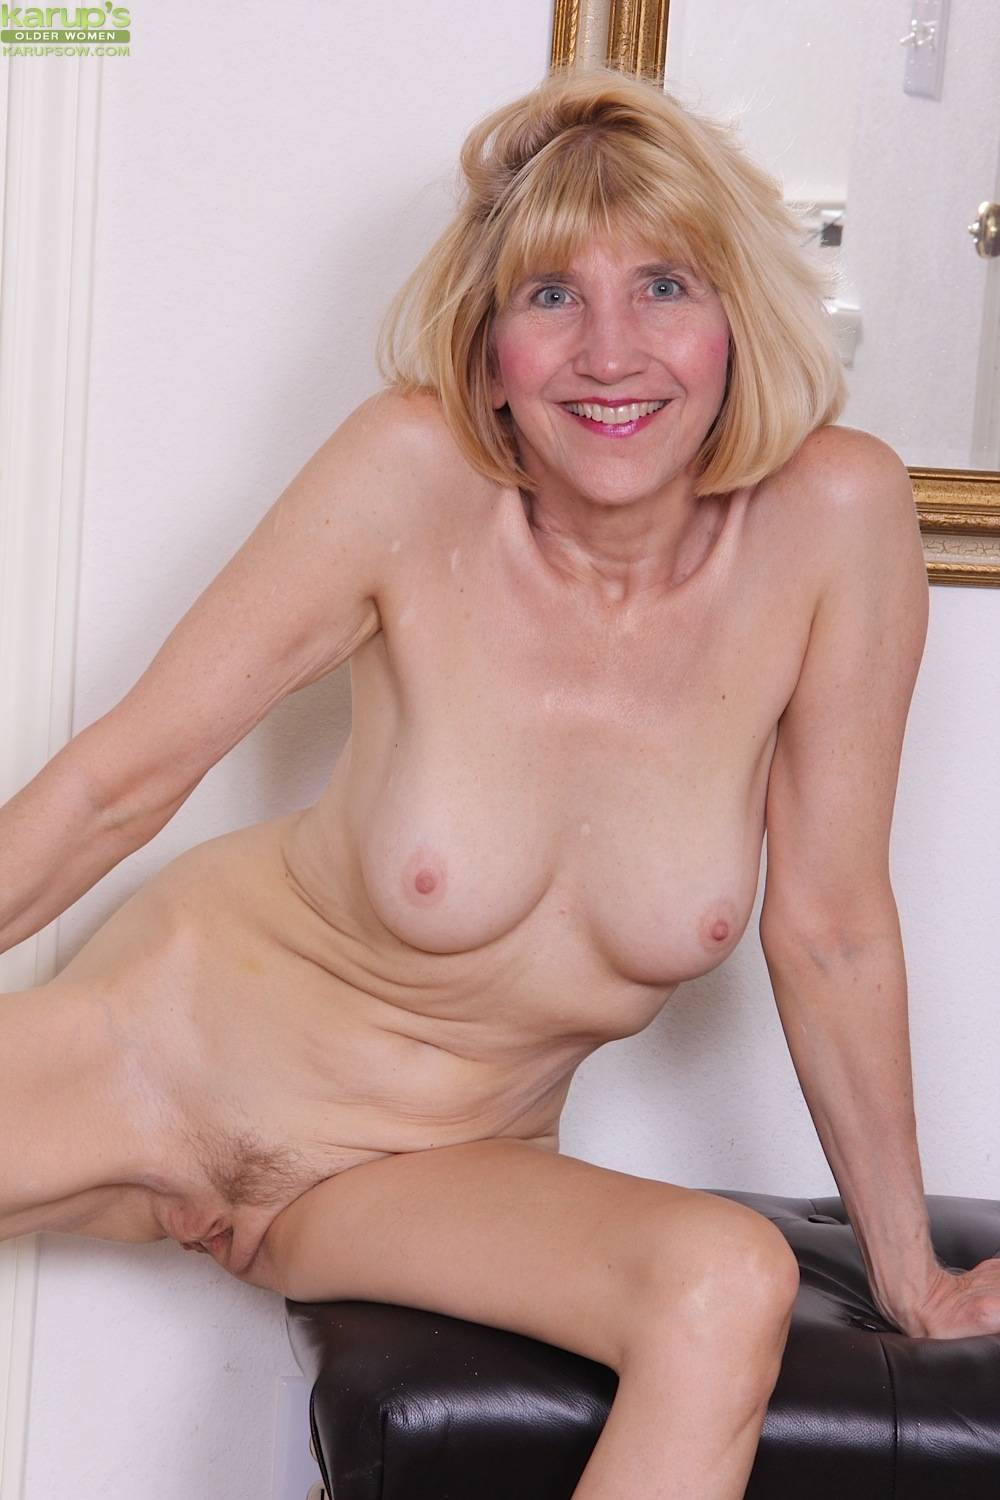 Horny business woman Bossy Ryder strips after work at Karupsow